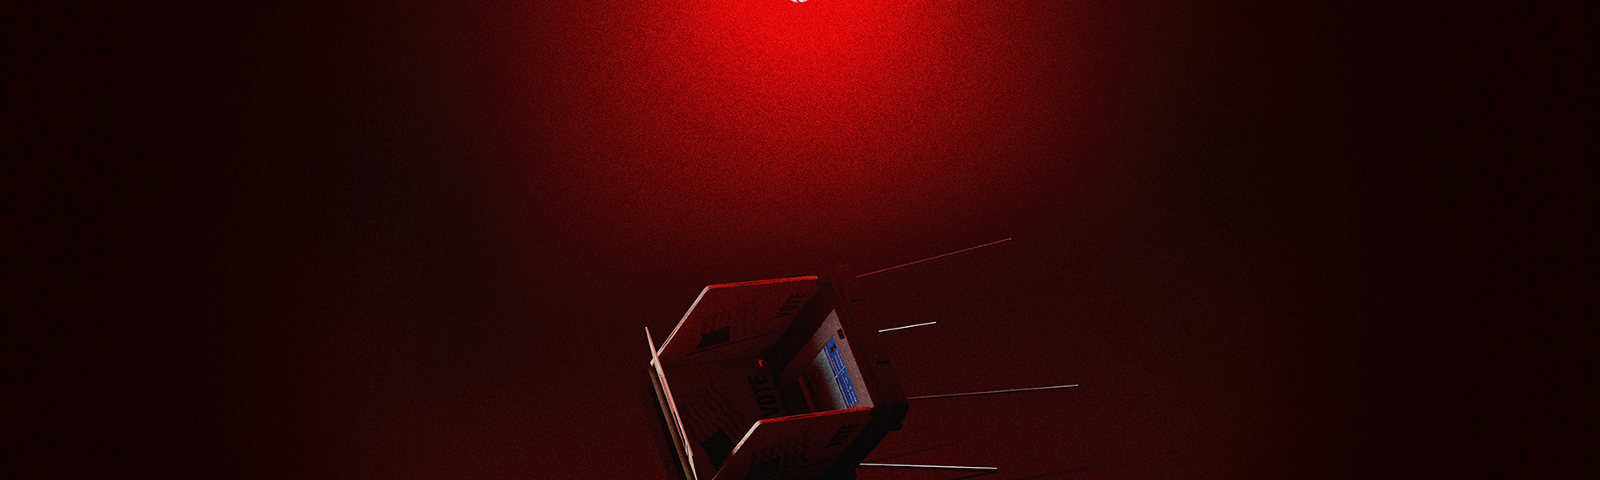 An overturned voting booth beneath a red lightbulb in a dark space.